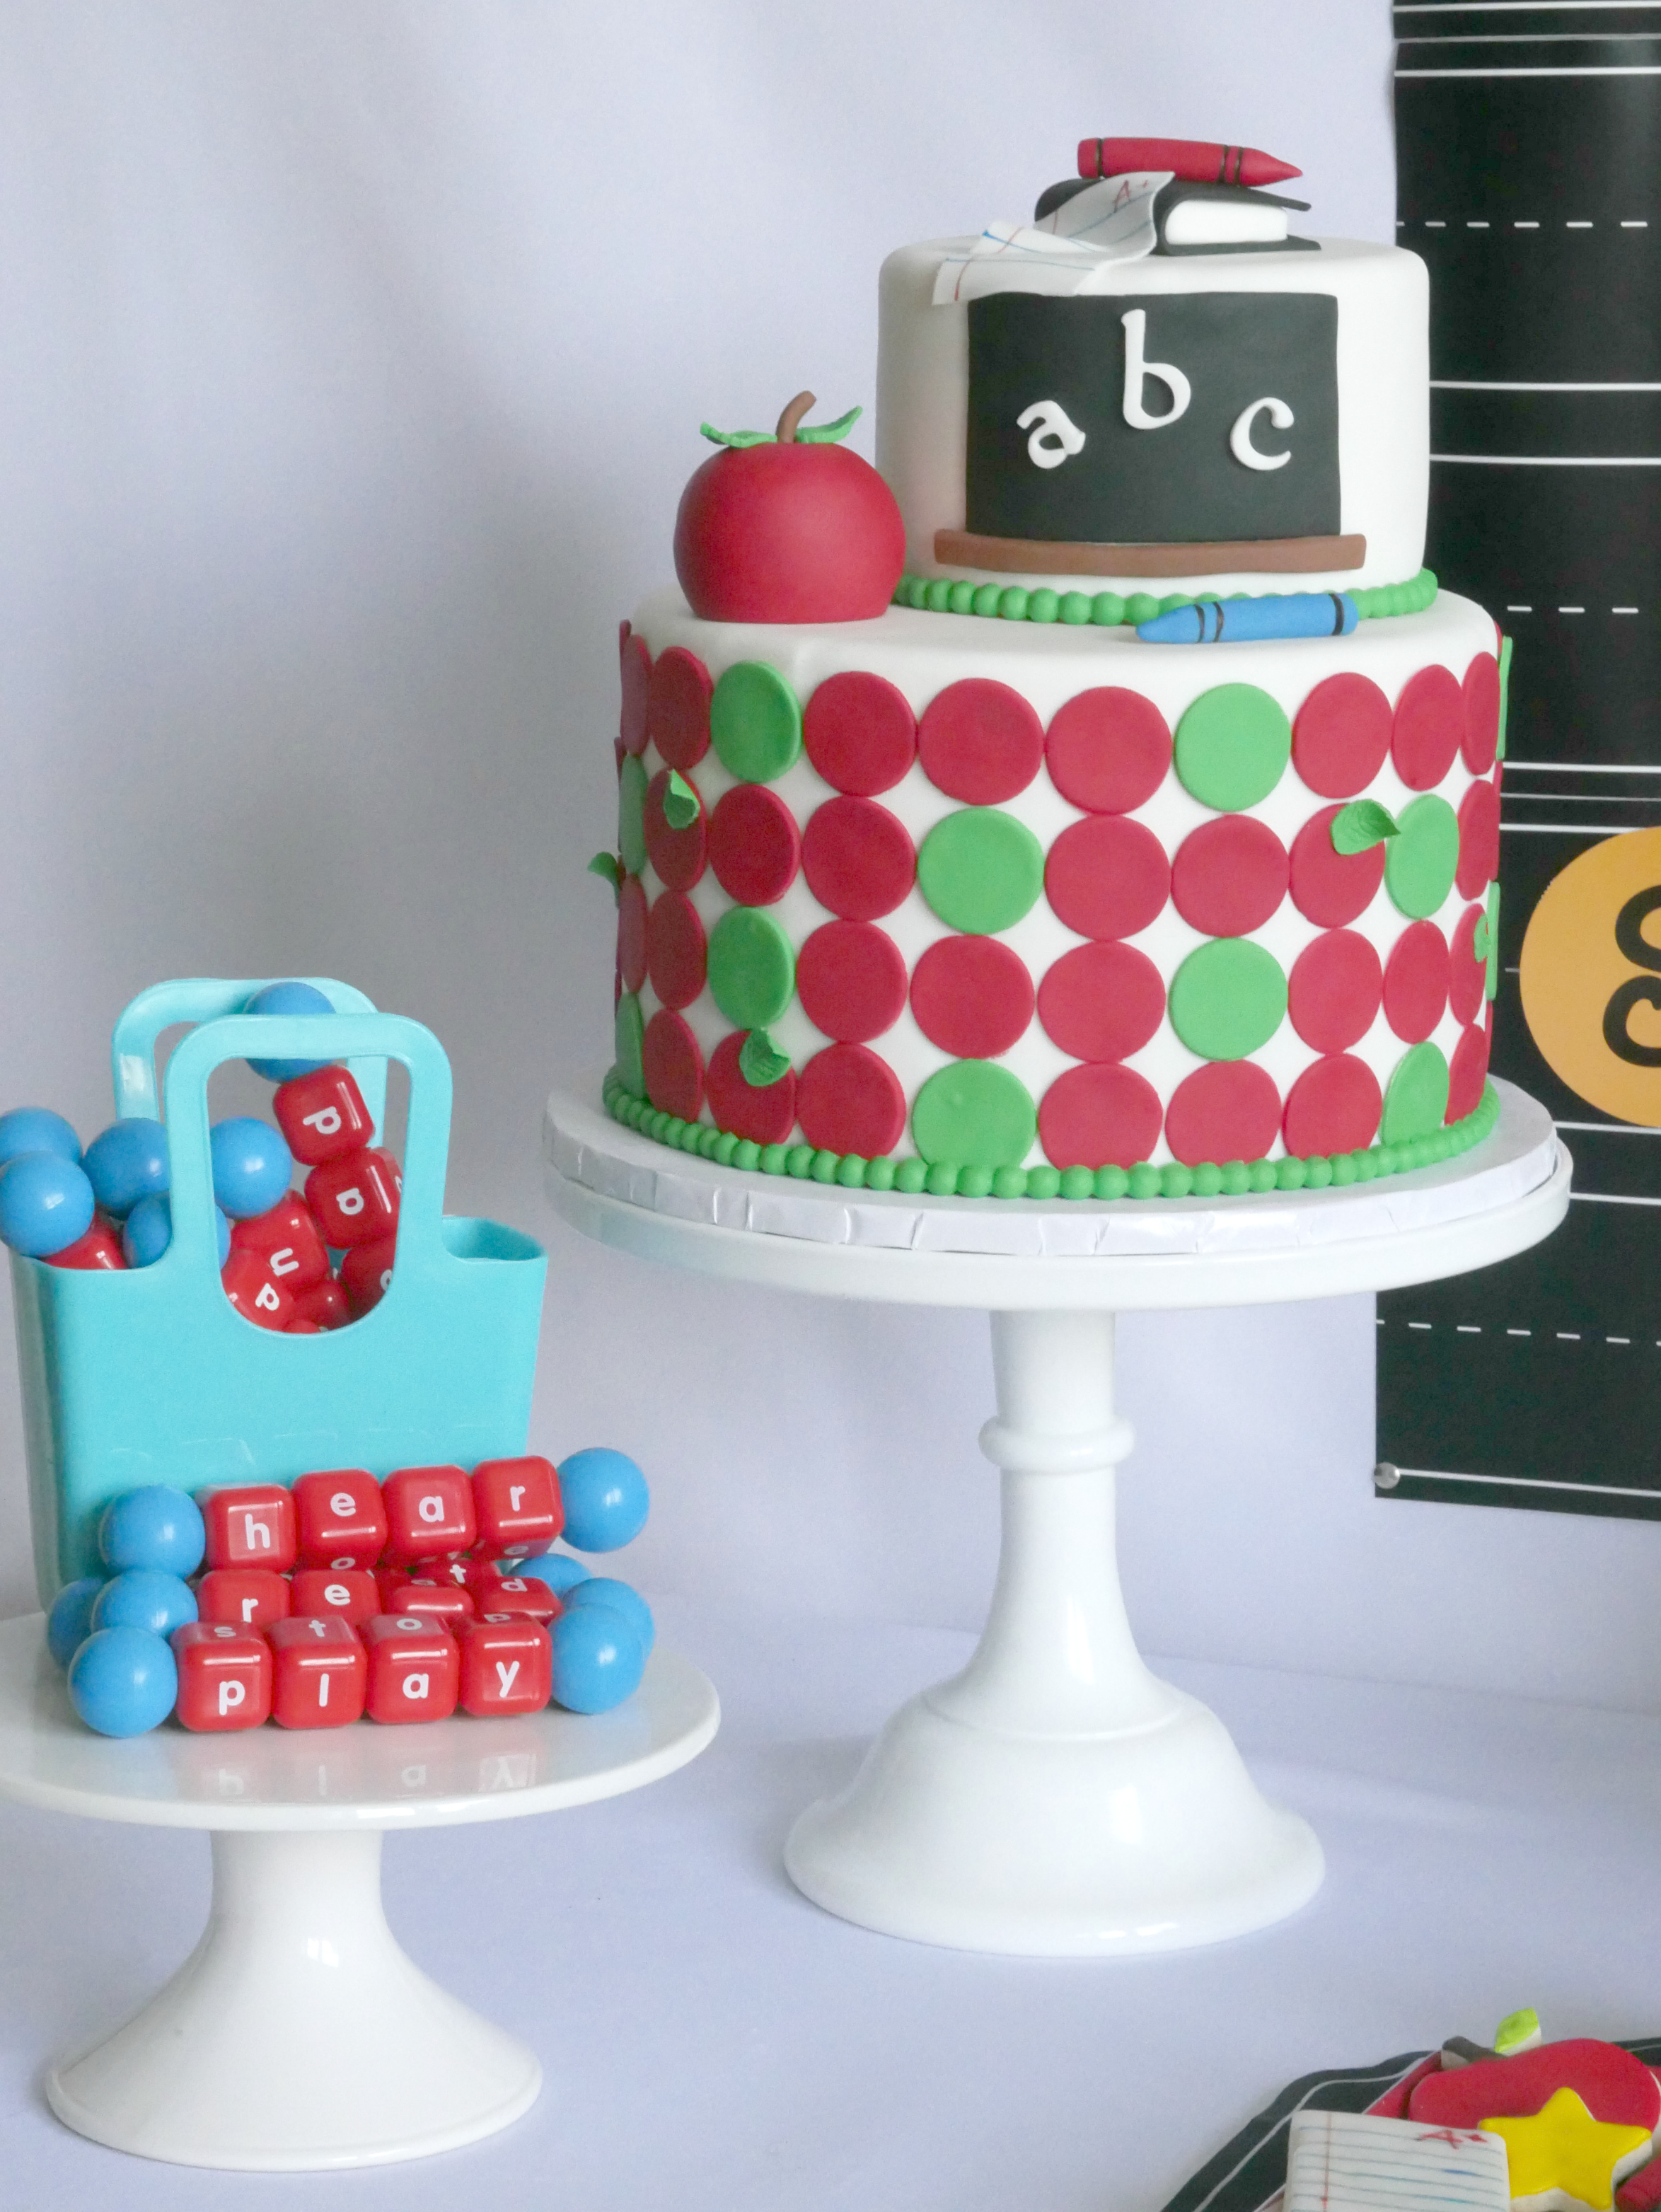 Two tiered school themed cake, with lettered beads perfect for a back to school party! Love all the party decorations and desserts. See all the party details on Mint Event Design www.minteventdesign.com #backtoschool #backtoschoolideas #kidsparty #kidspartyideas #kidsparties #partyfavors